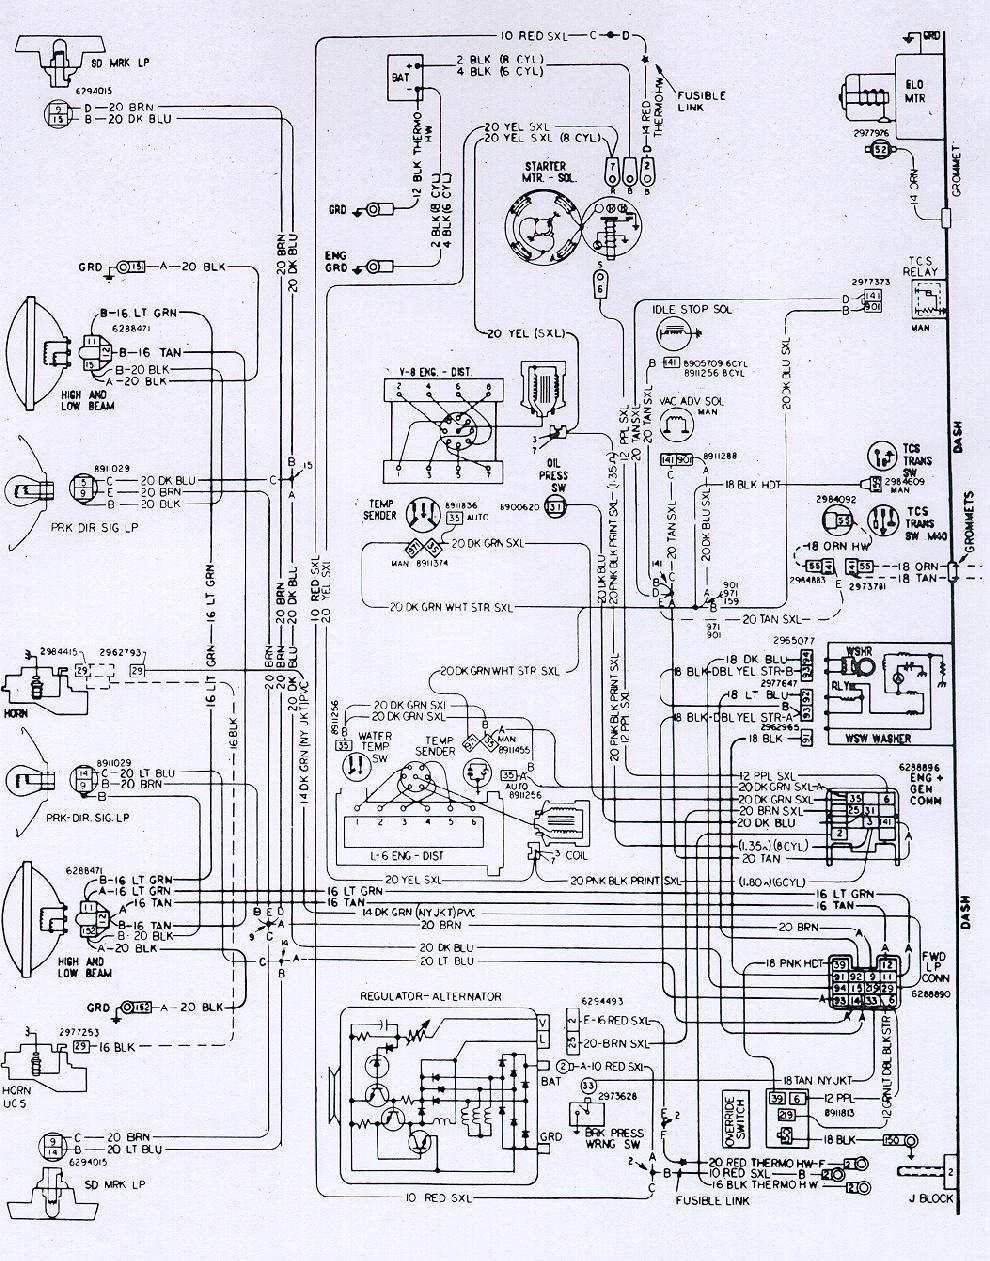 medium resolution of camaro wiring electrical information 1995 camaro engine diagram 1995 camaro ignition switch wiring diagram